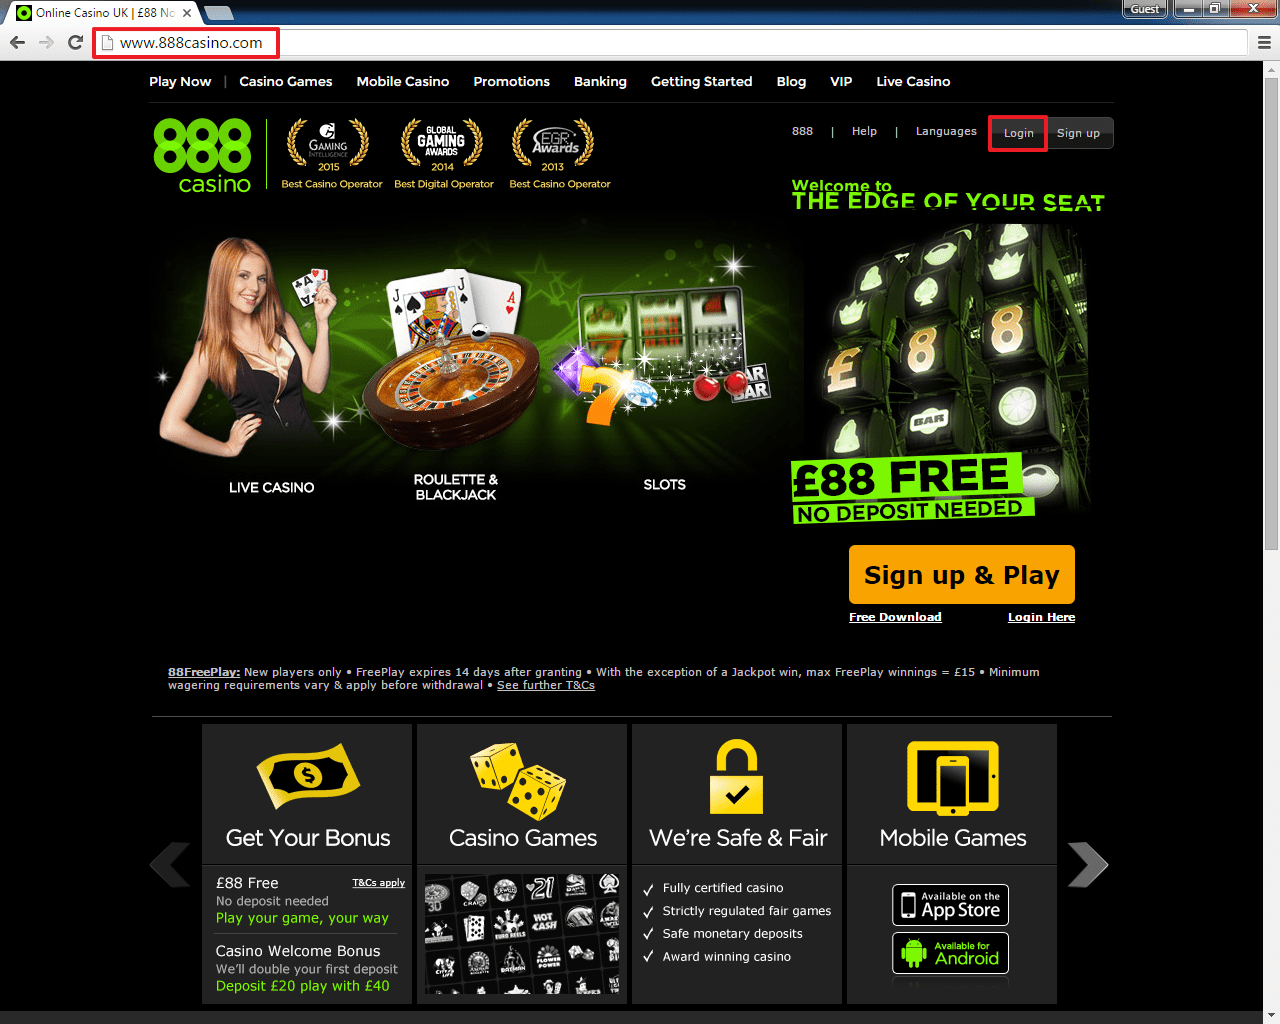 Eliminare account 888 casino